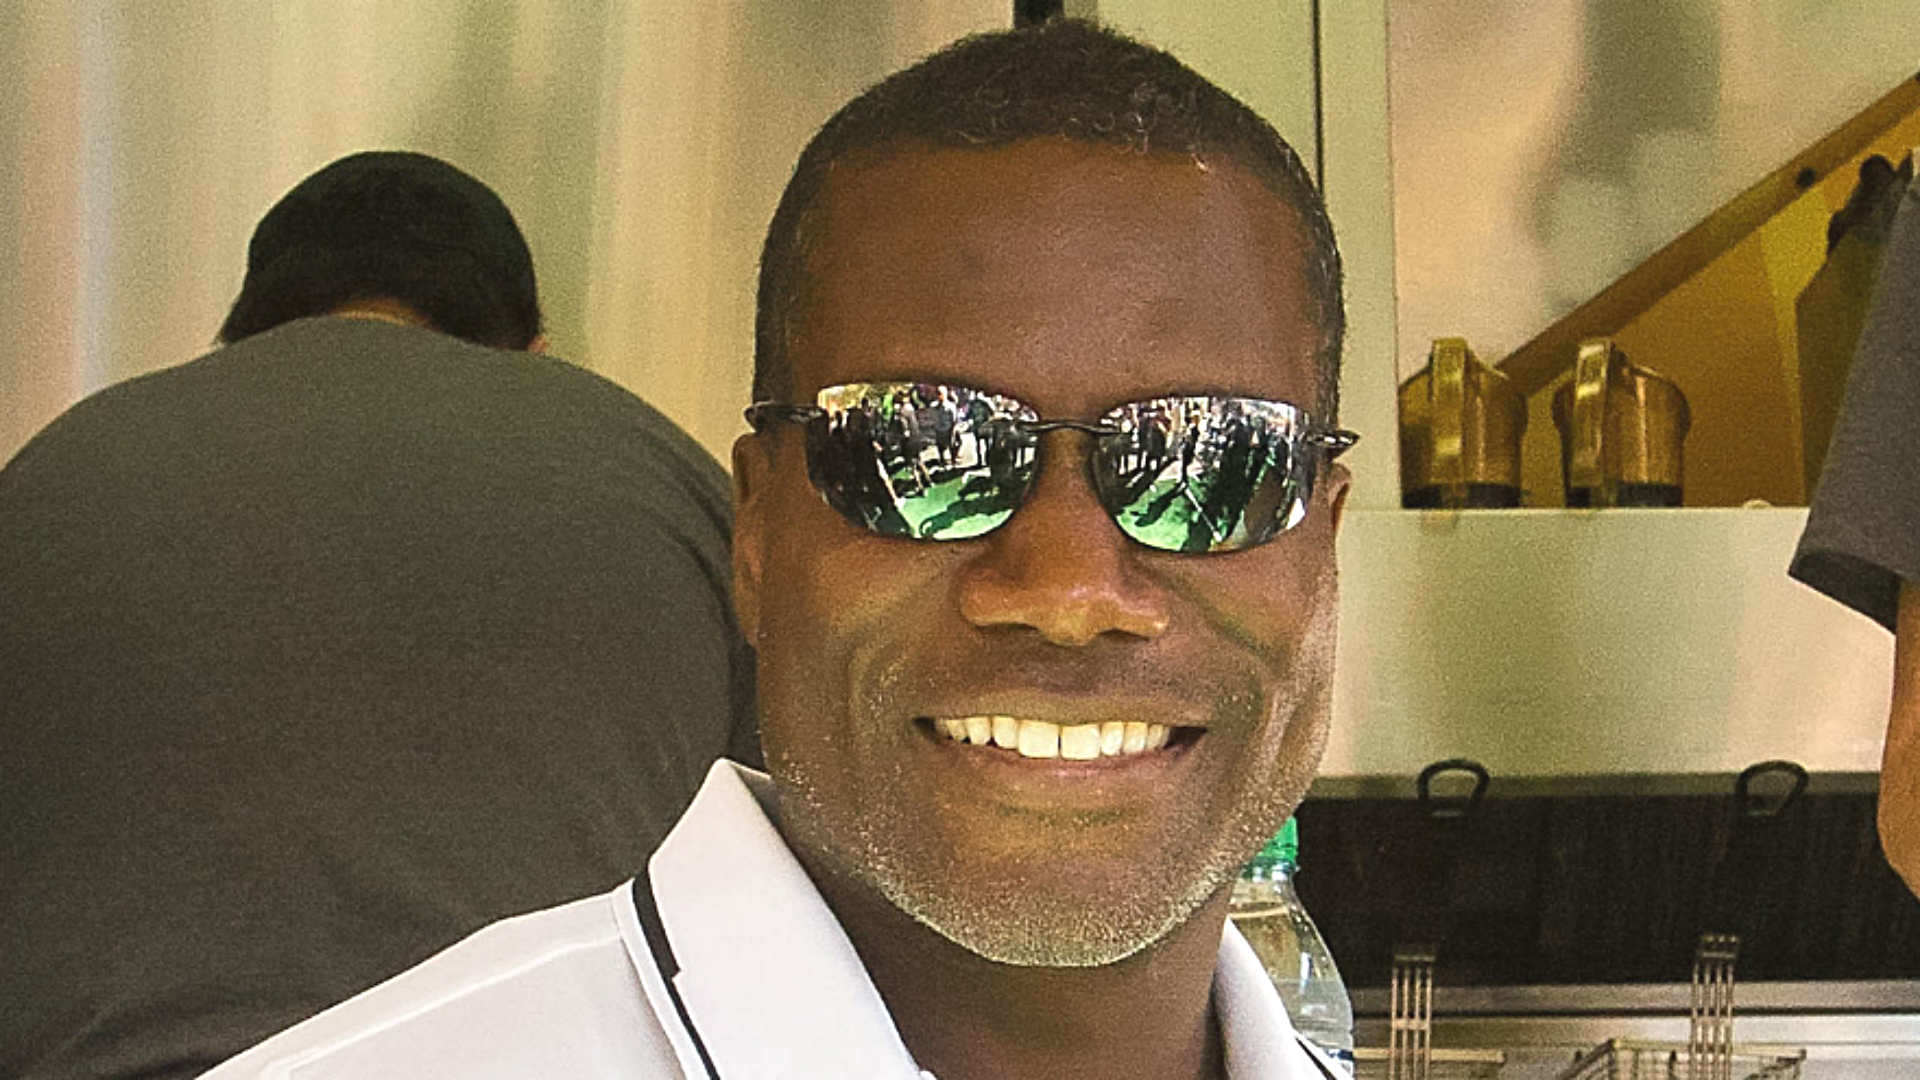 Joey-Galloway-071615-USNews-Getty-FTR